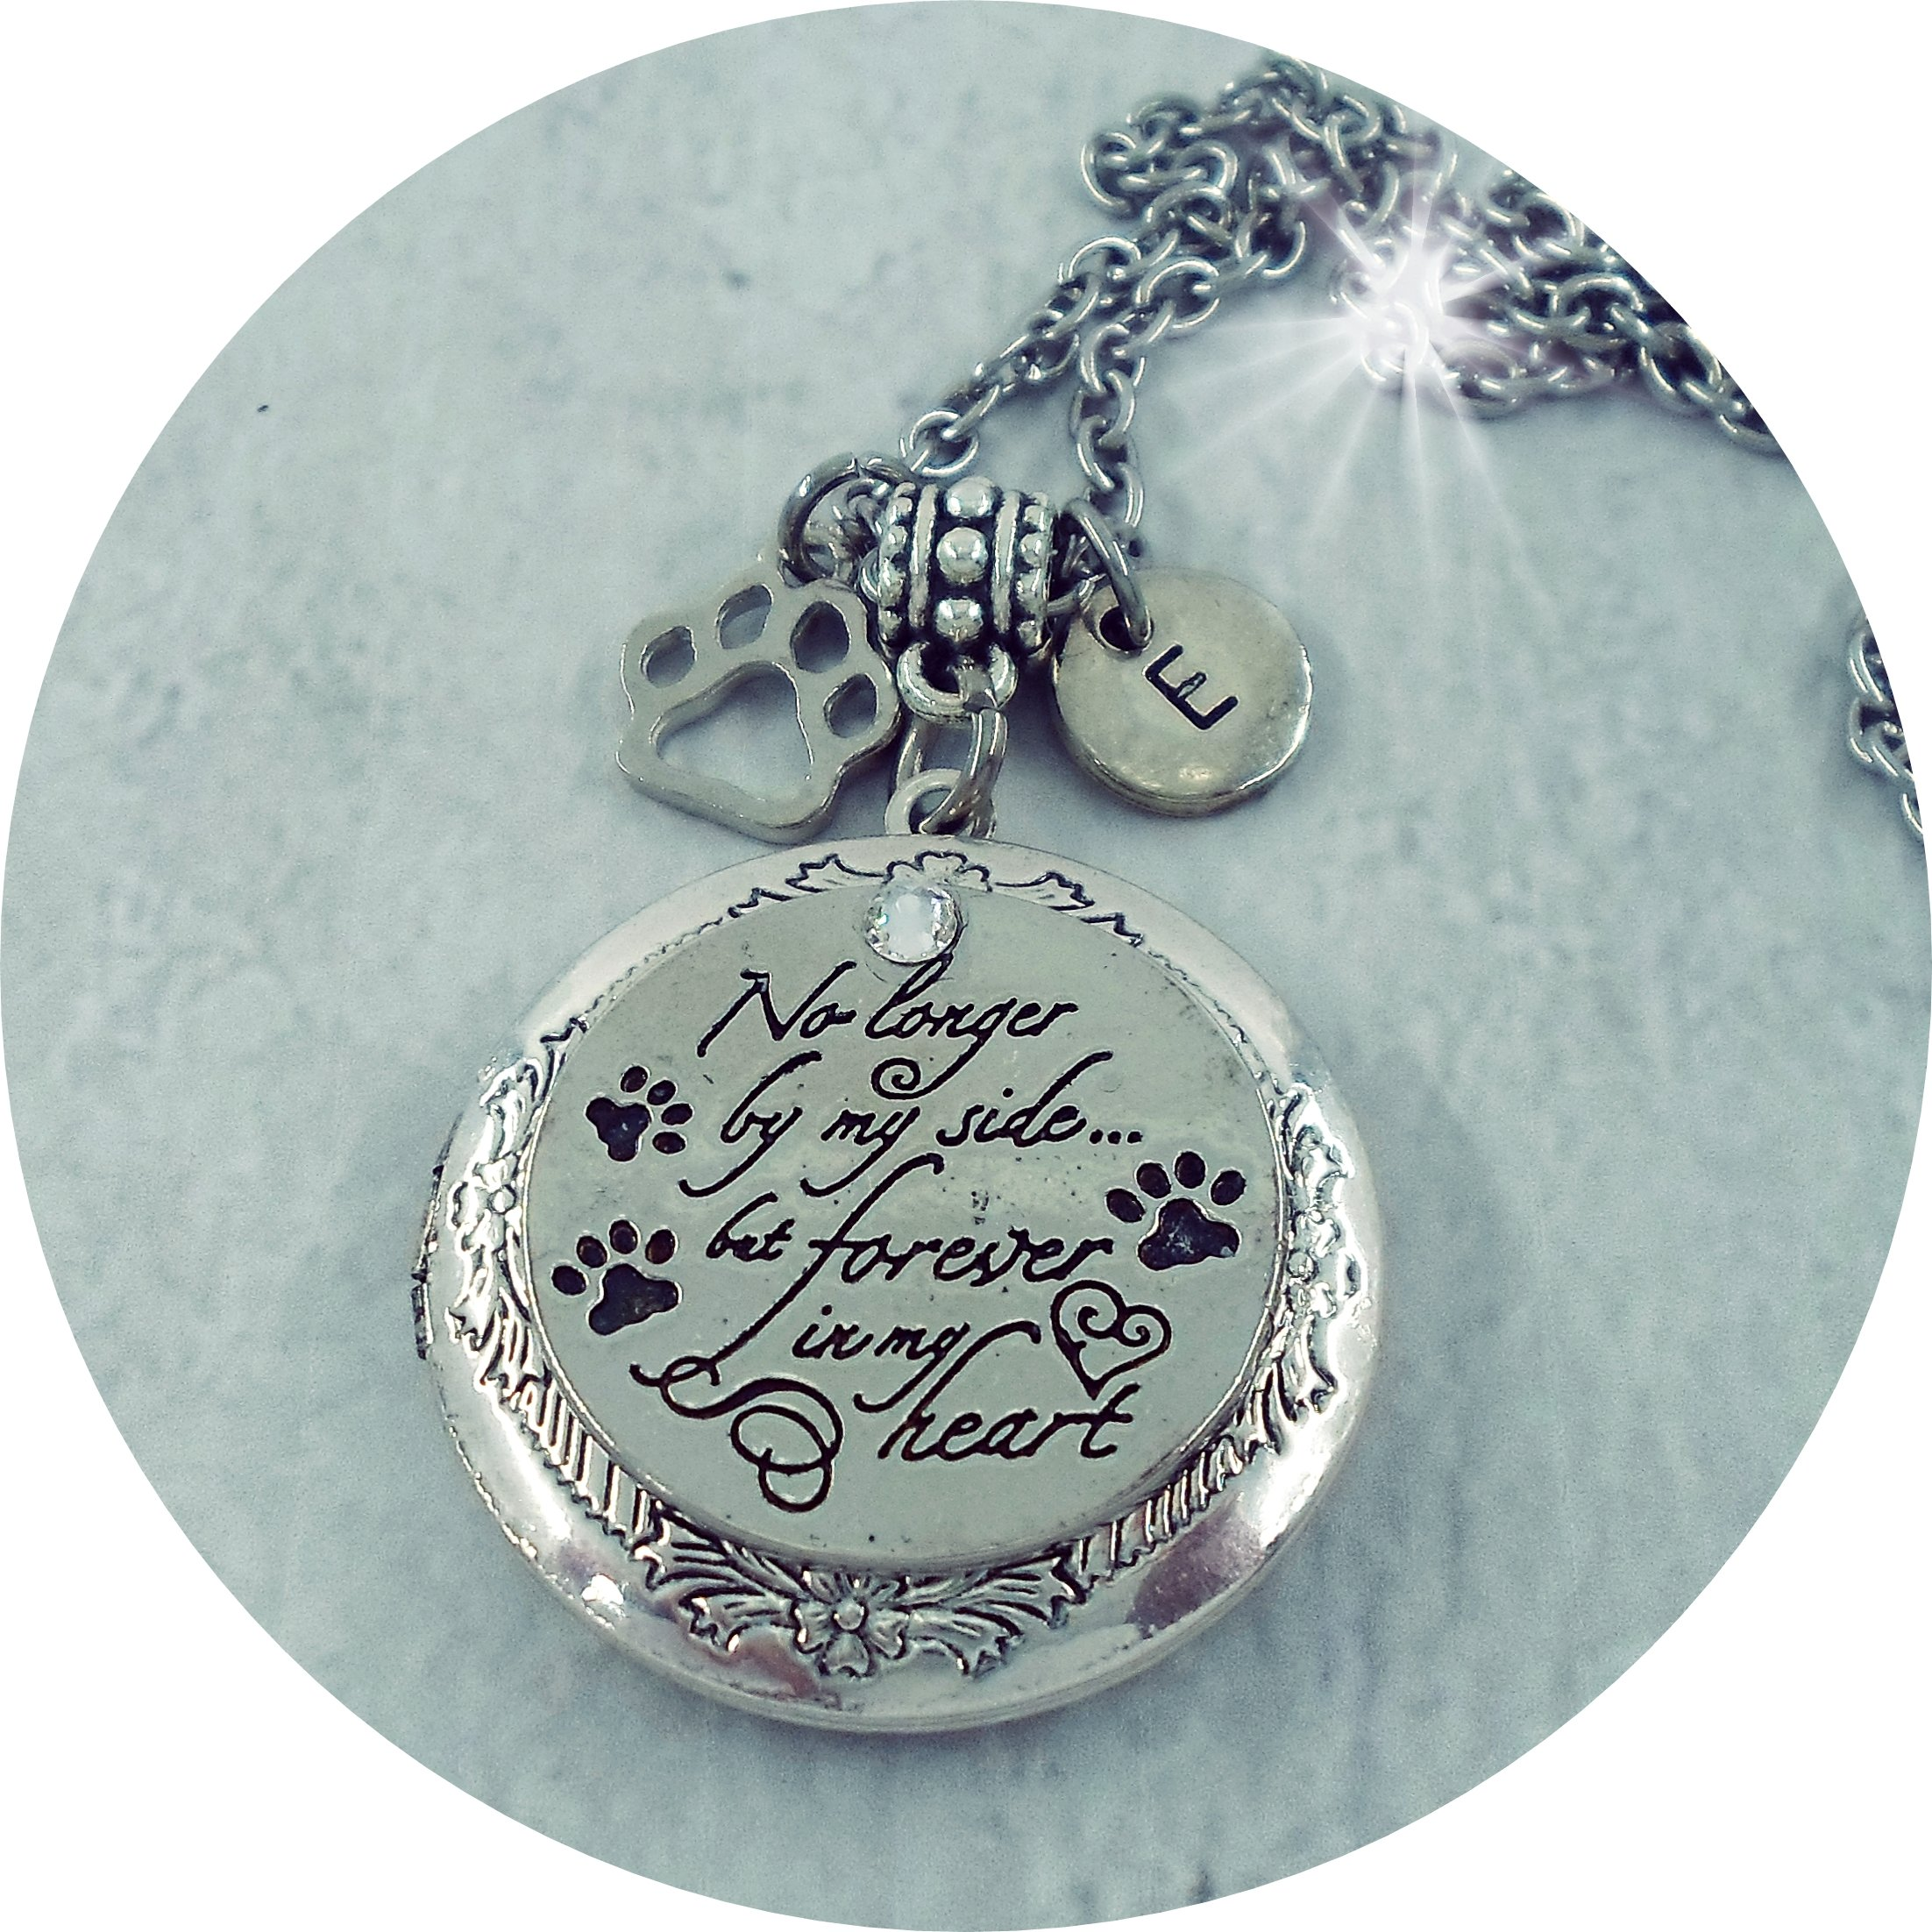 Customized Pet Memorial Locket with Your Photo Inside, No longer by my side but forever in my heart (in Script) made w-Love